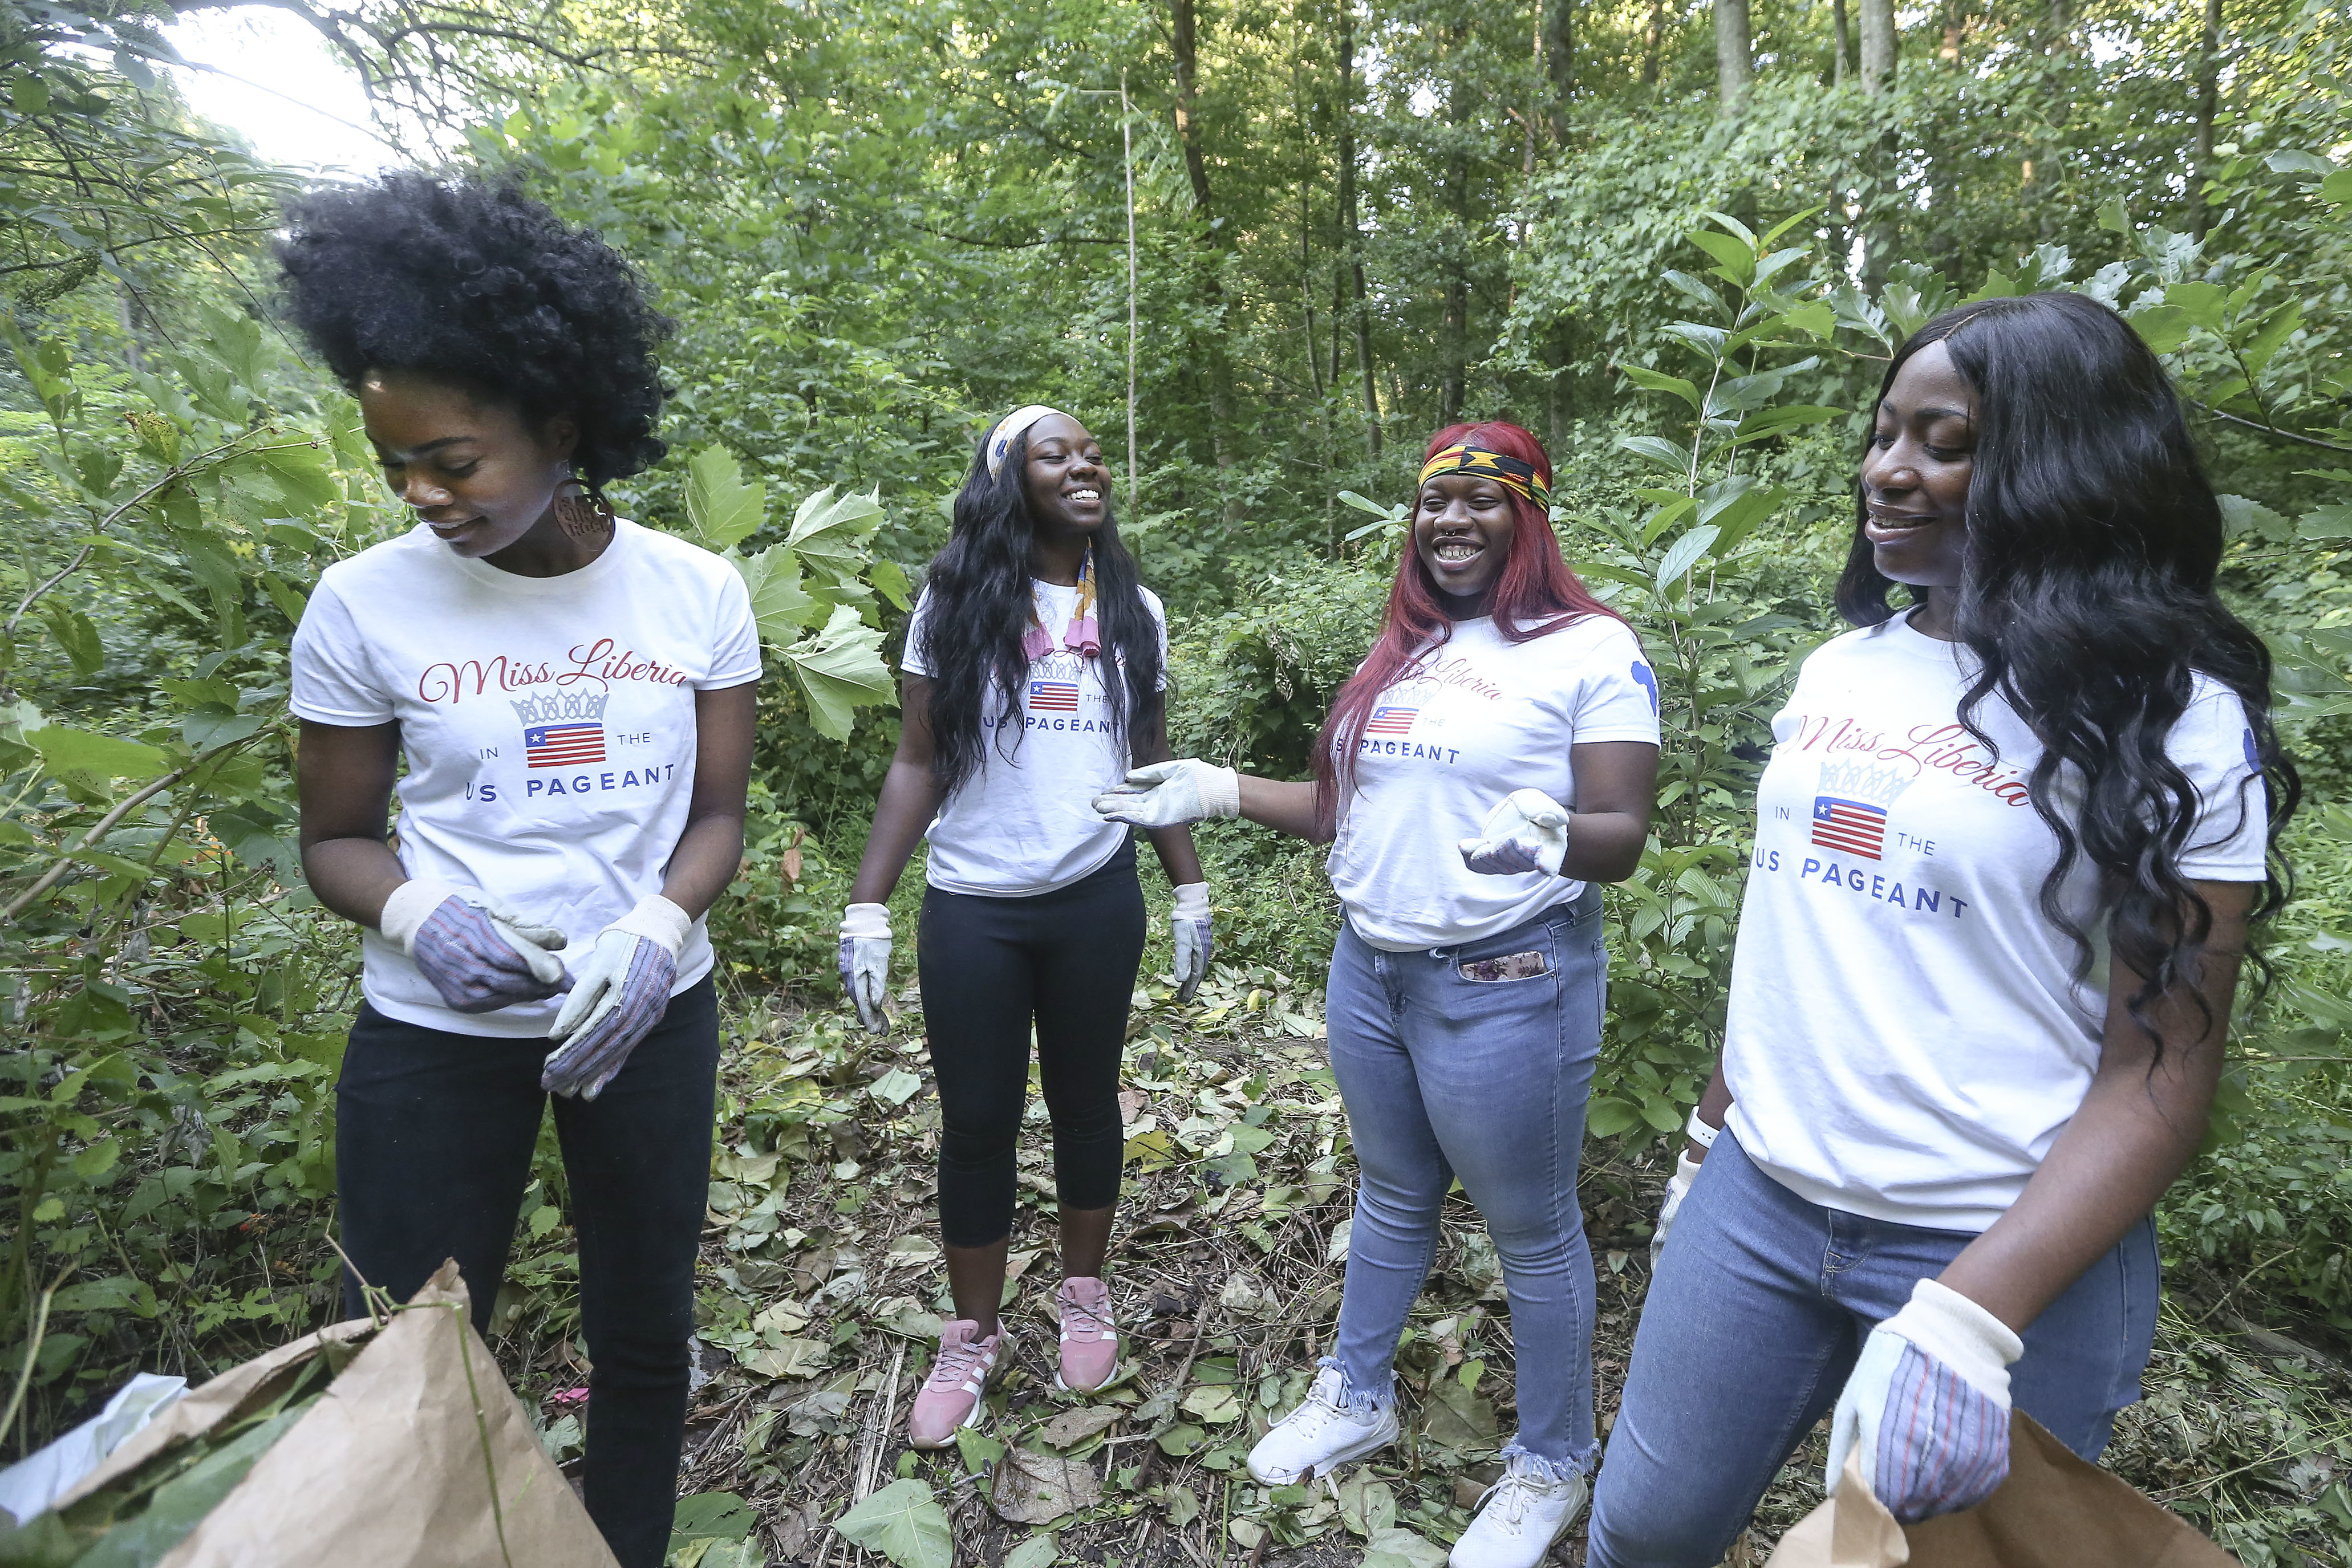 Miss Liberia Pageant contestants (l-r) Naomi Glay, Aba Aggrey, Alberta Richards and Rudmita Mark working on a service project with Royal Gardens cleaning up Morris Park in Overbrook, Wednesday, July 18, 2018.